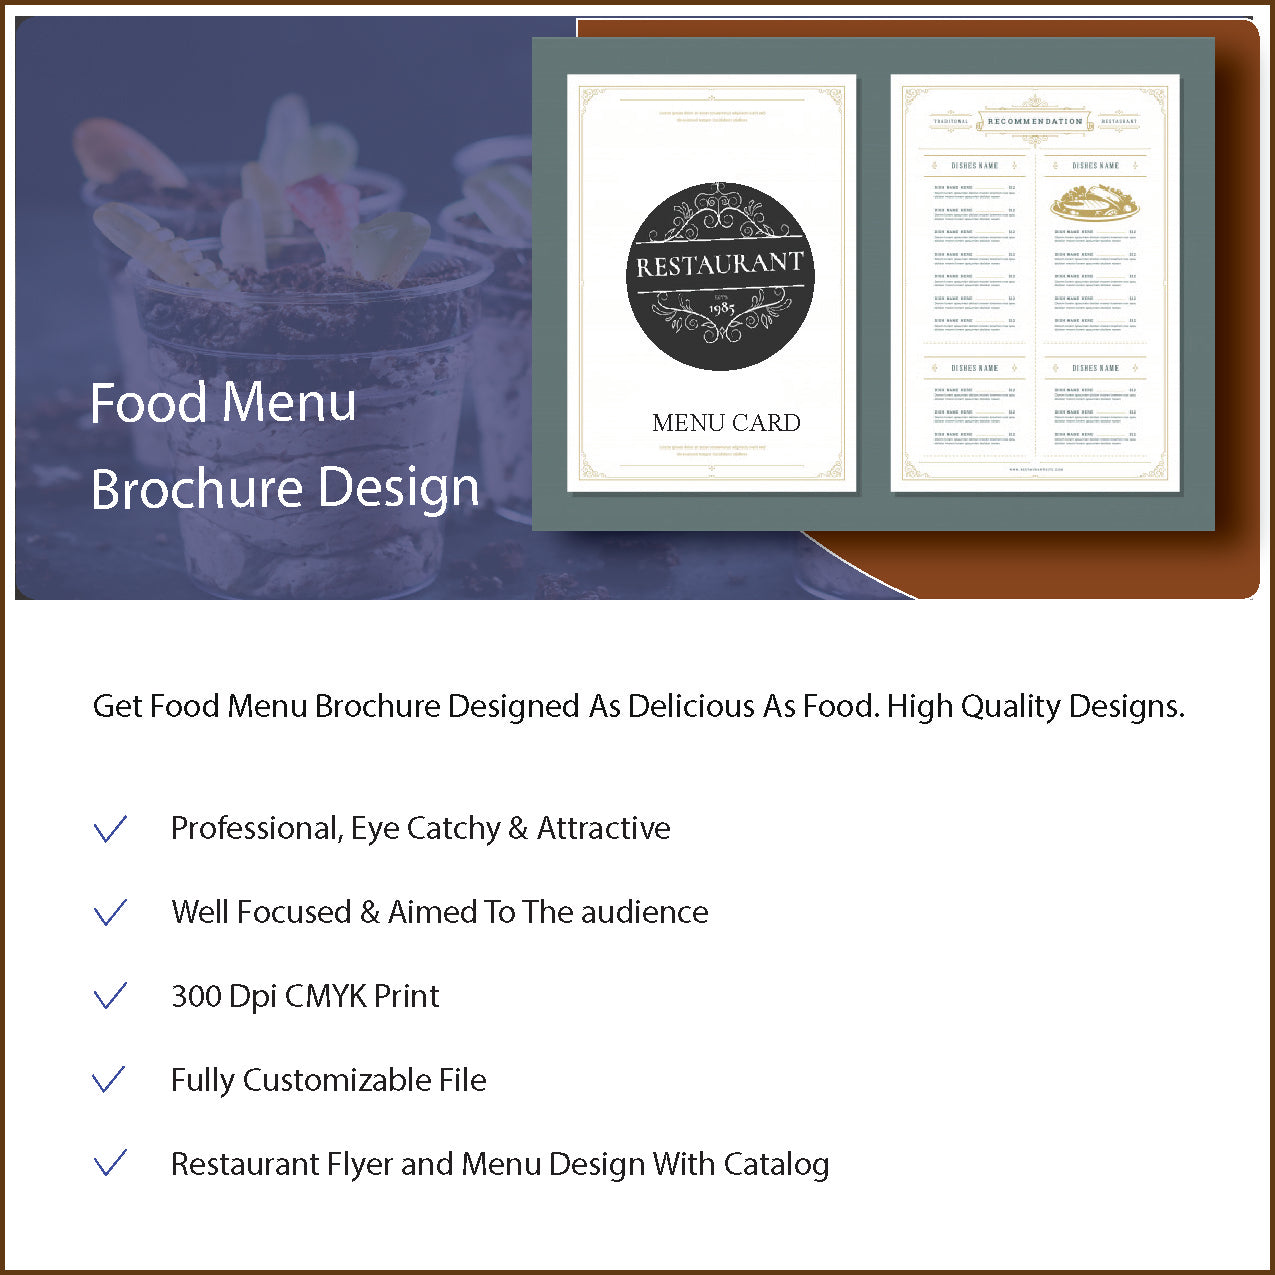 Food Menu Brochure Design